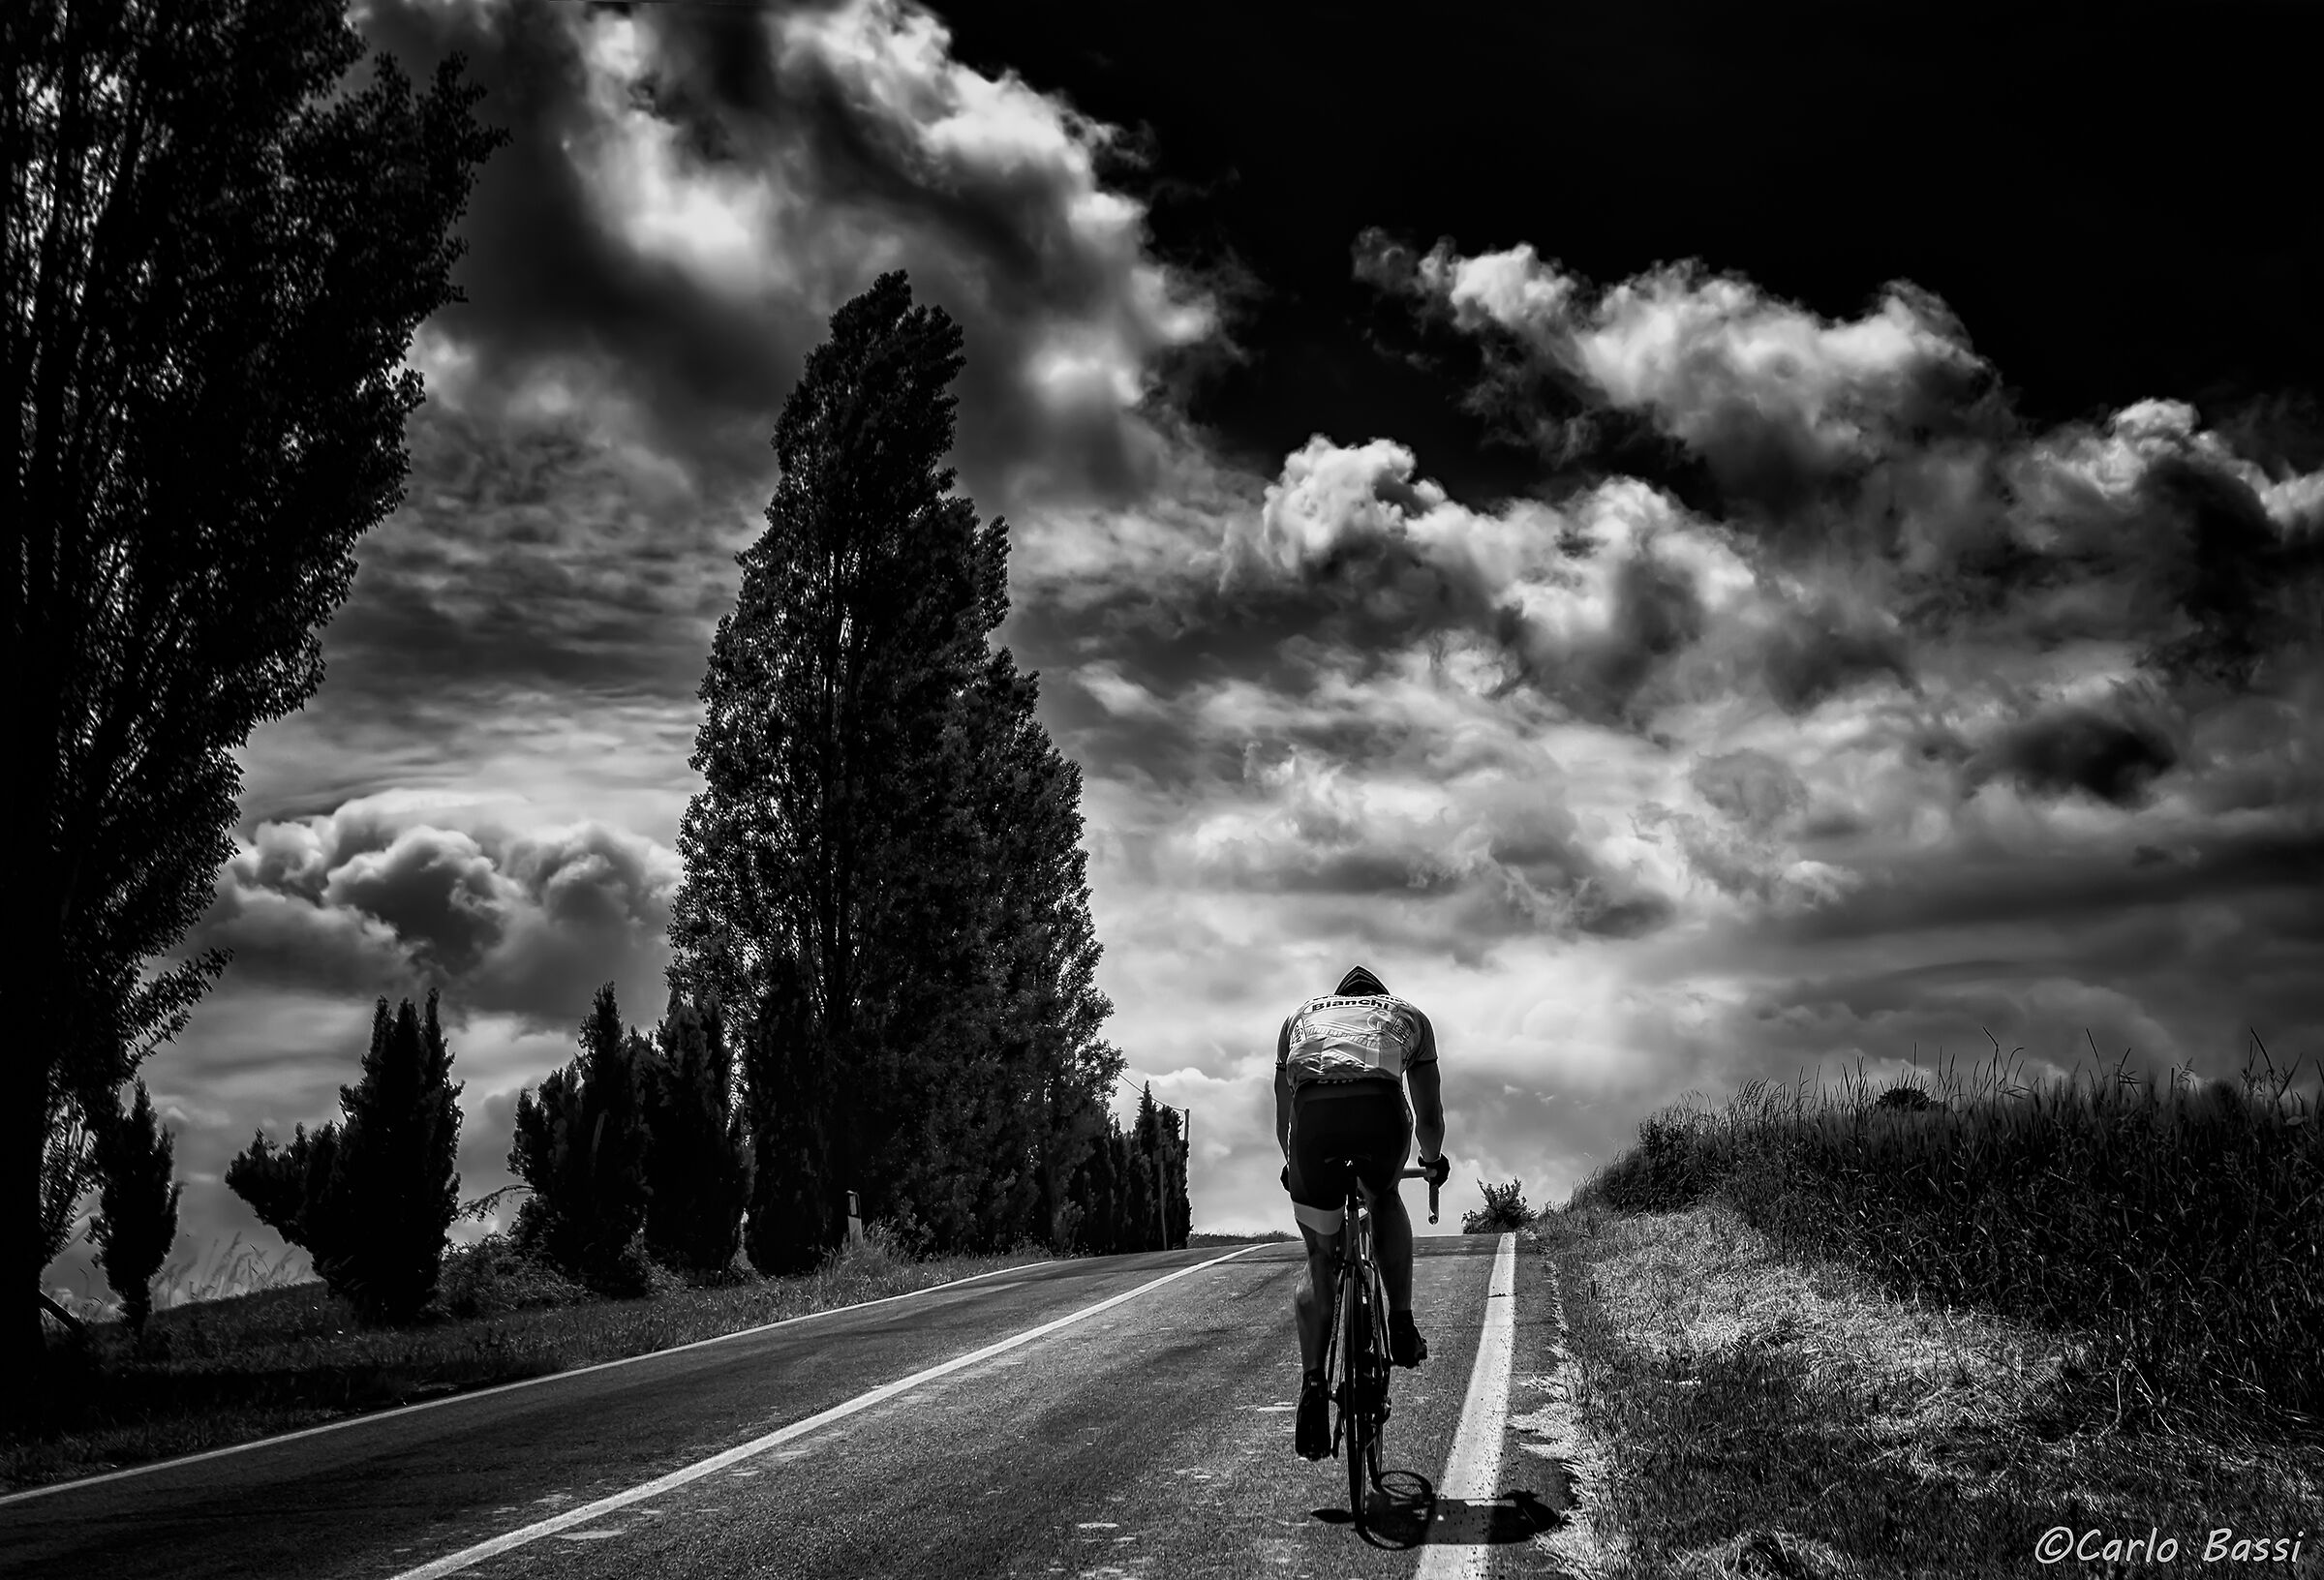 On the trail of Bartali...